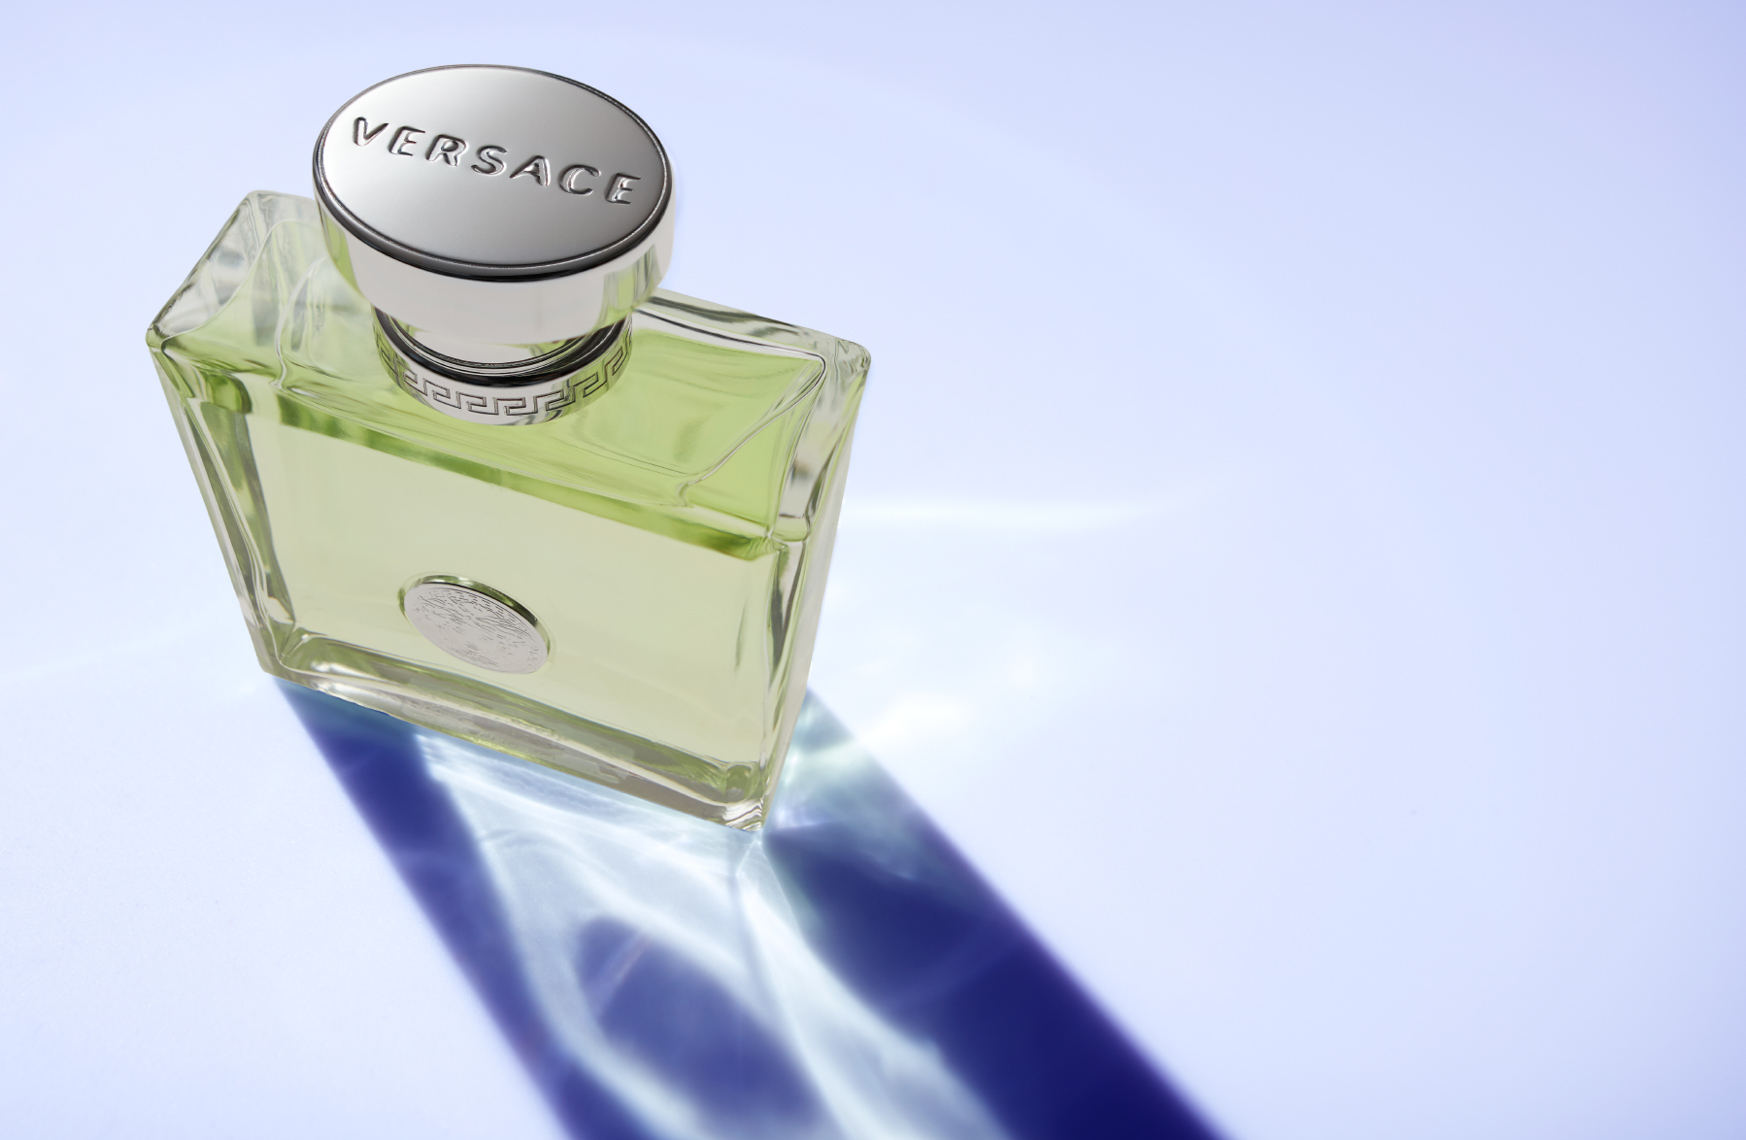 bottle of green perfume with shadow on blue surface San Francisco product photographer